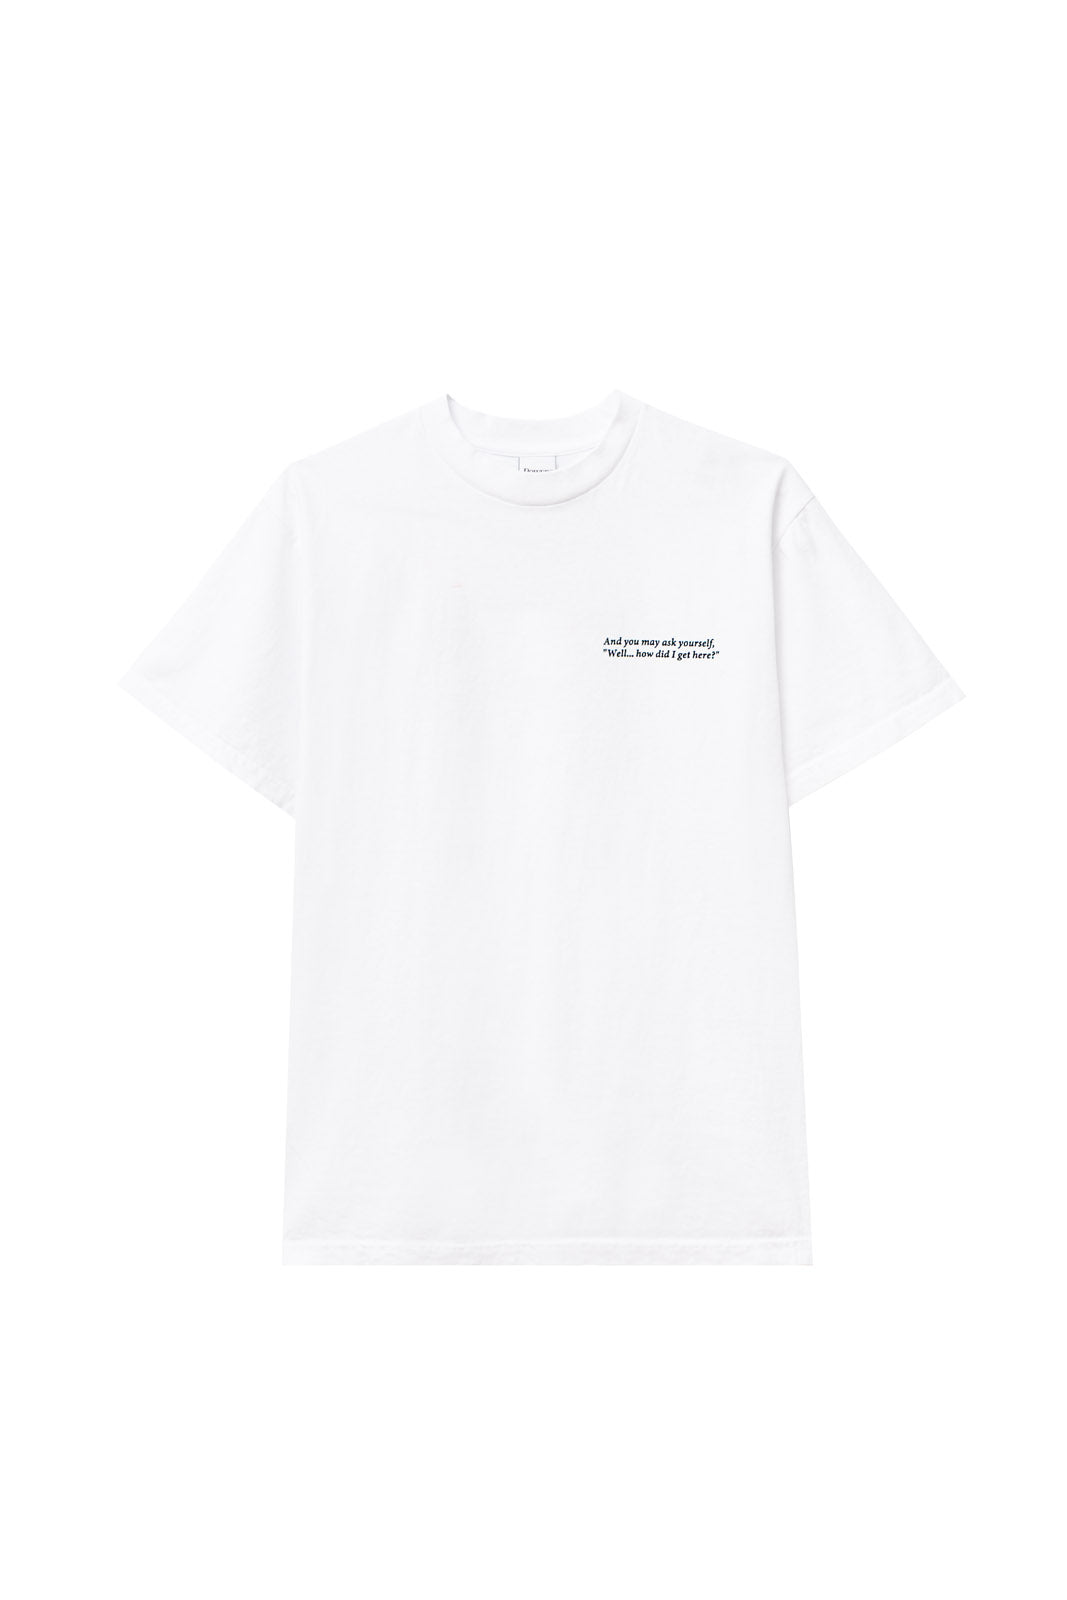 POWERS SUPPLY M'S T-SHIRTS REAL WORLD SS TEE - WHITE